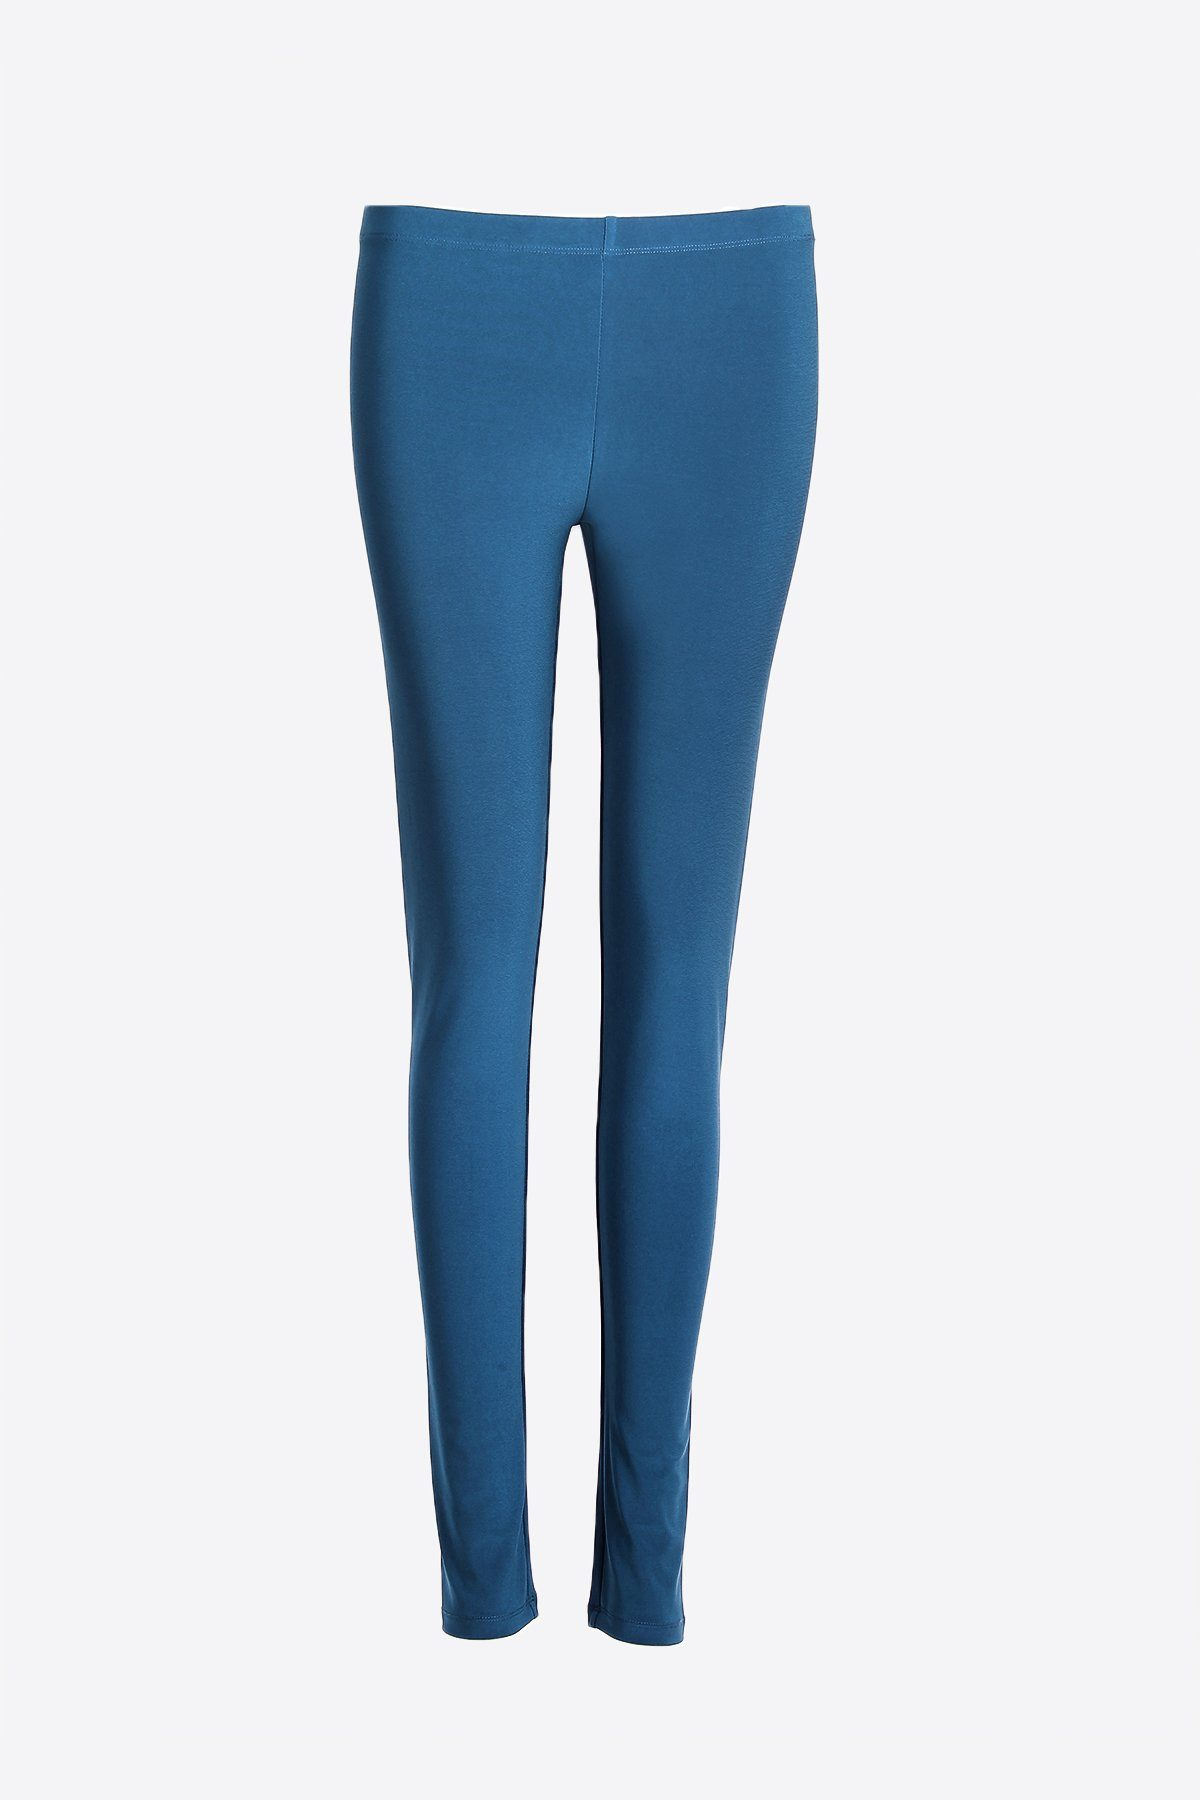 Leggings - Women's Clothing -ROSARINI